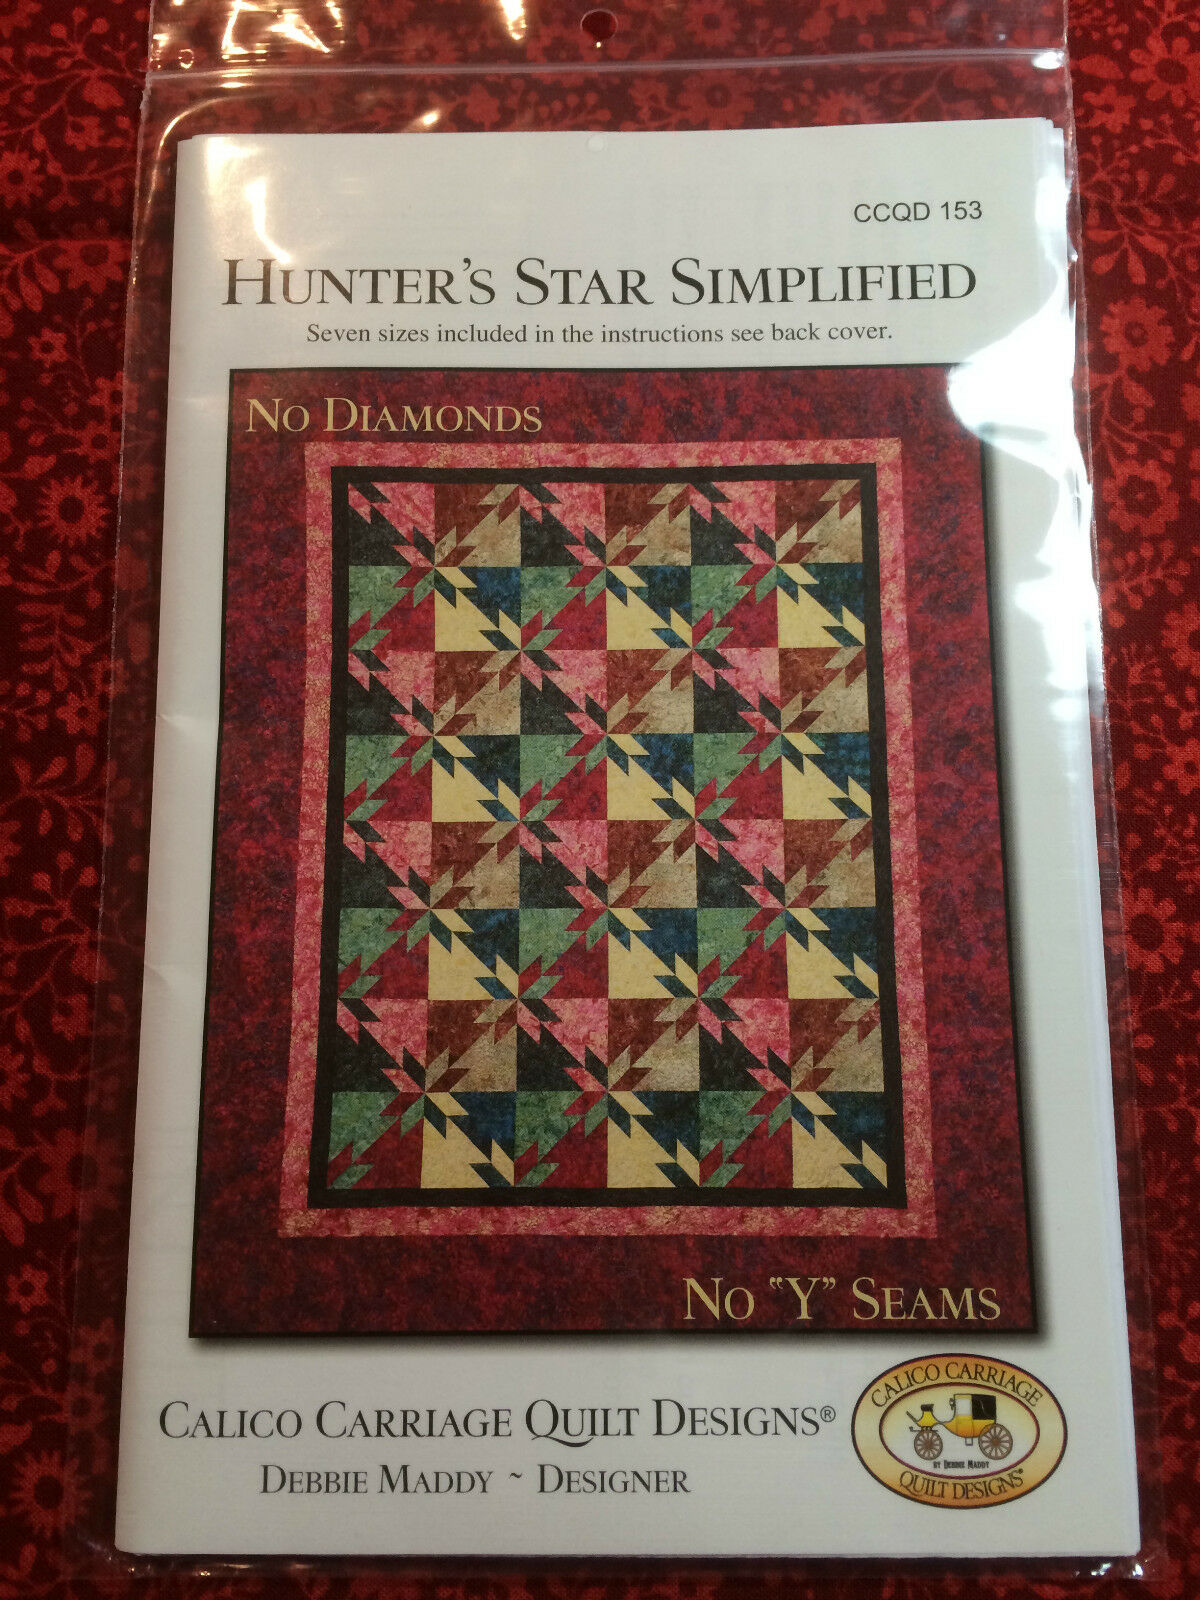 Calico Carriage Quilt Pattern Hunter's Star Simplified 7 Sizes No ... : calico carriage quilt designs - Adamdwight.com